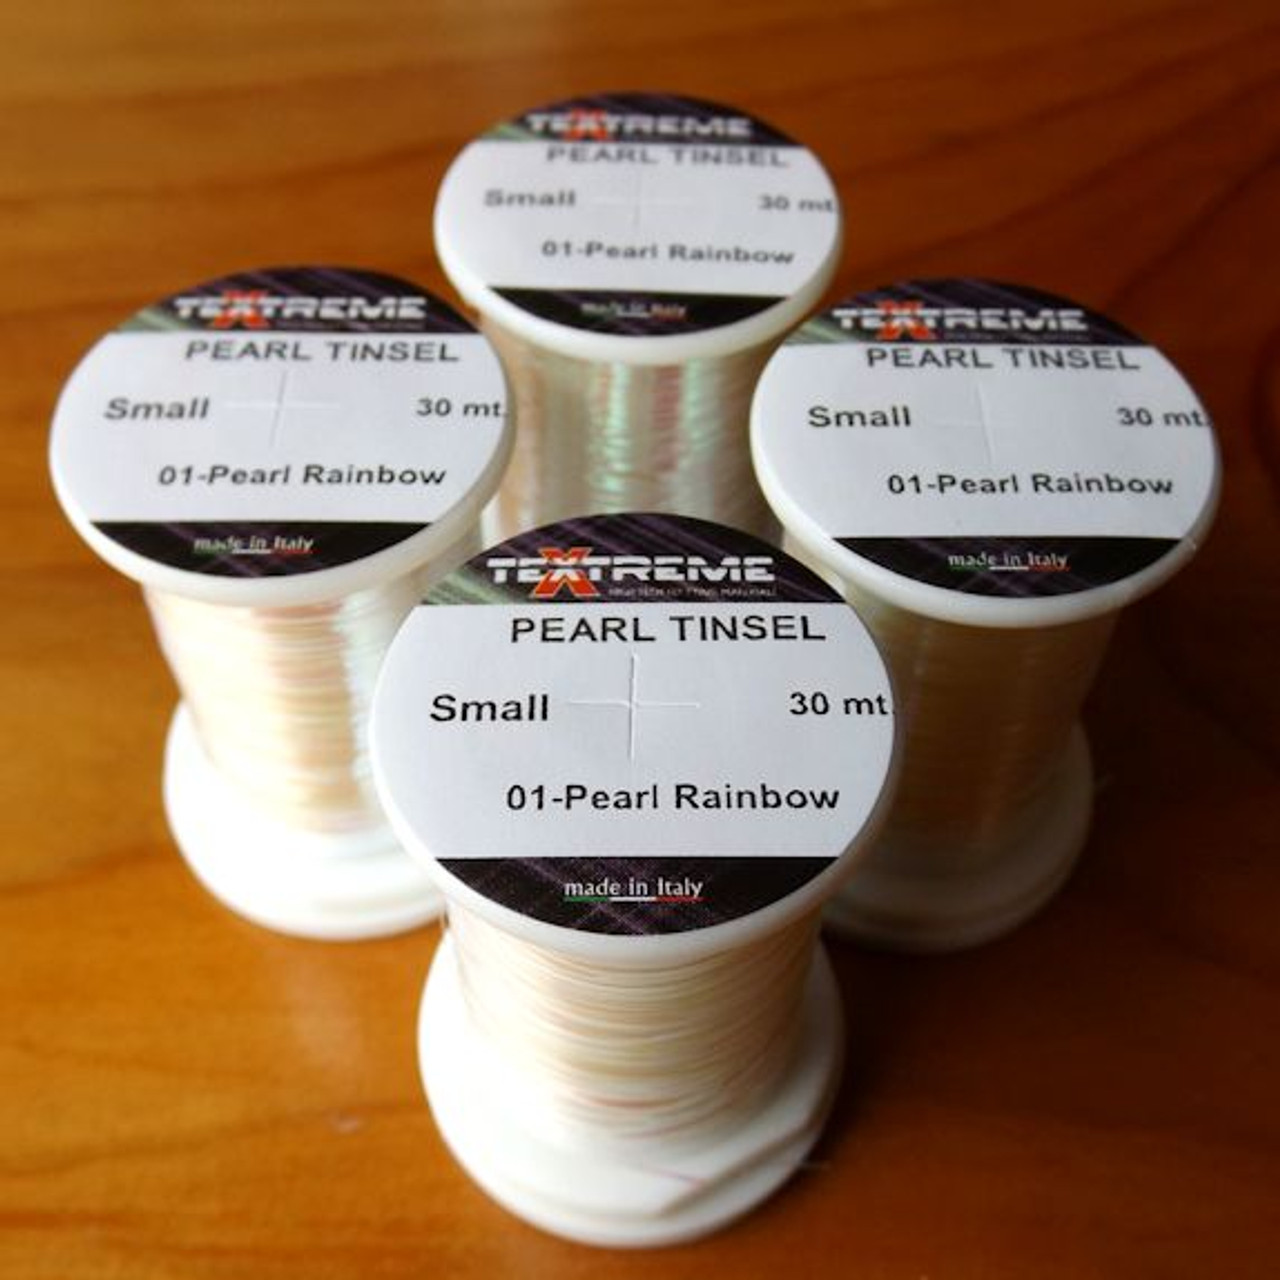 Textreme Small Pearl Tinsel